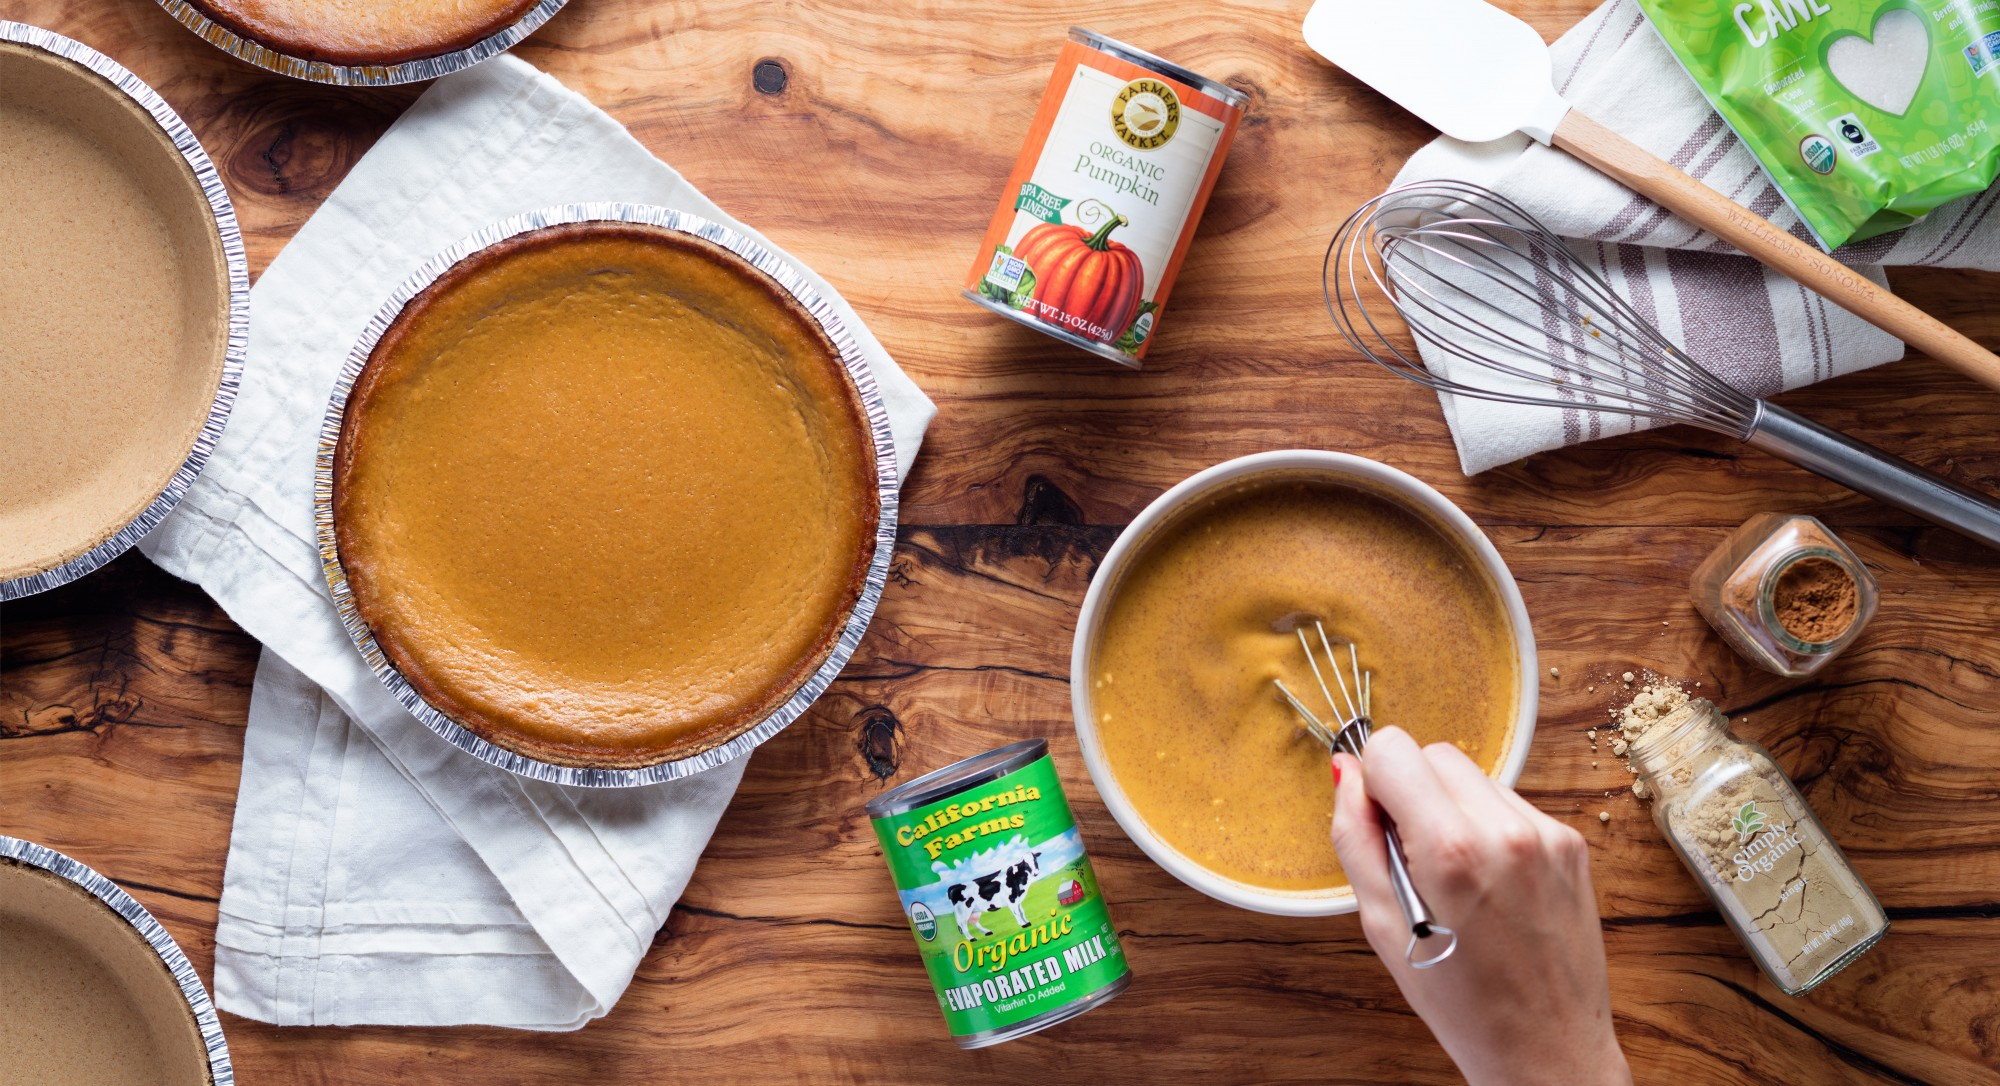 7 Pumpkin Spice Dessert Recipes to Make This Fall